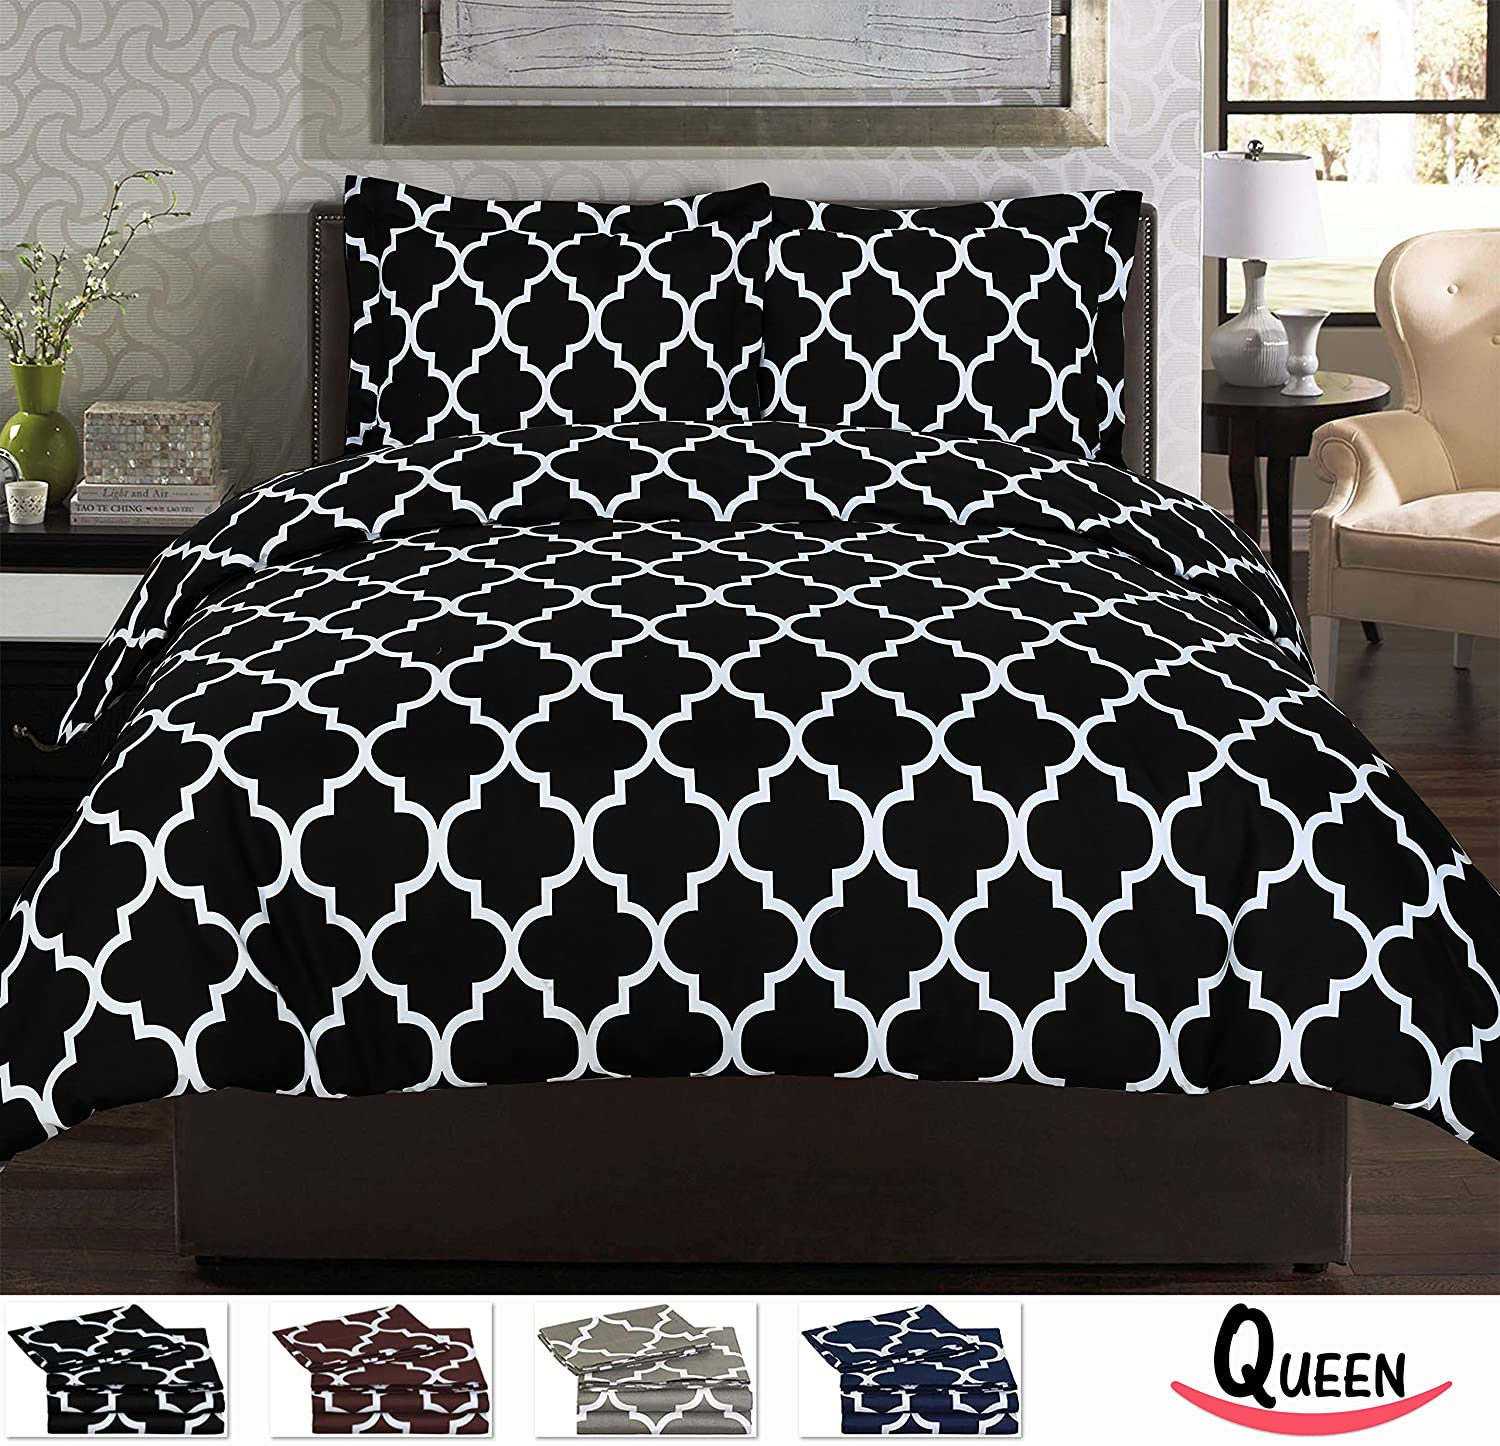 Bed sheet set black and white - Queen Printed Duvet Cover Set Black